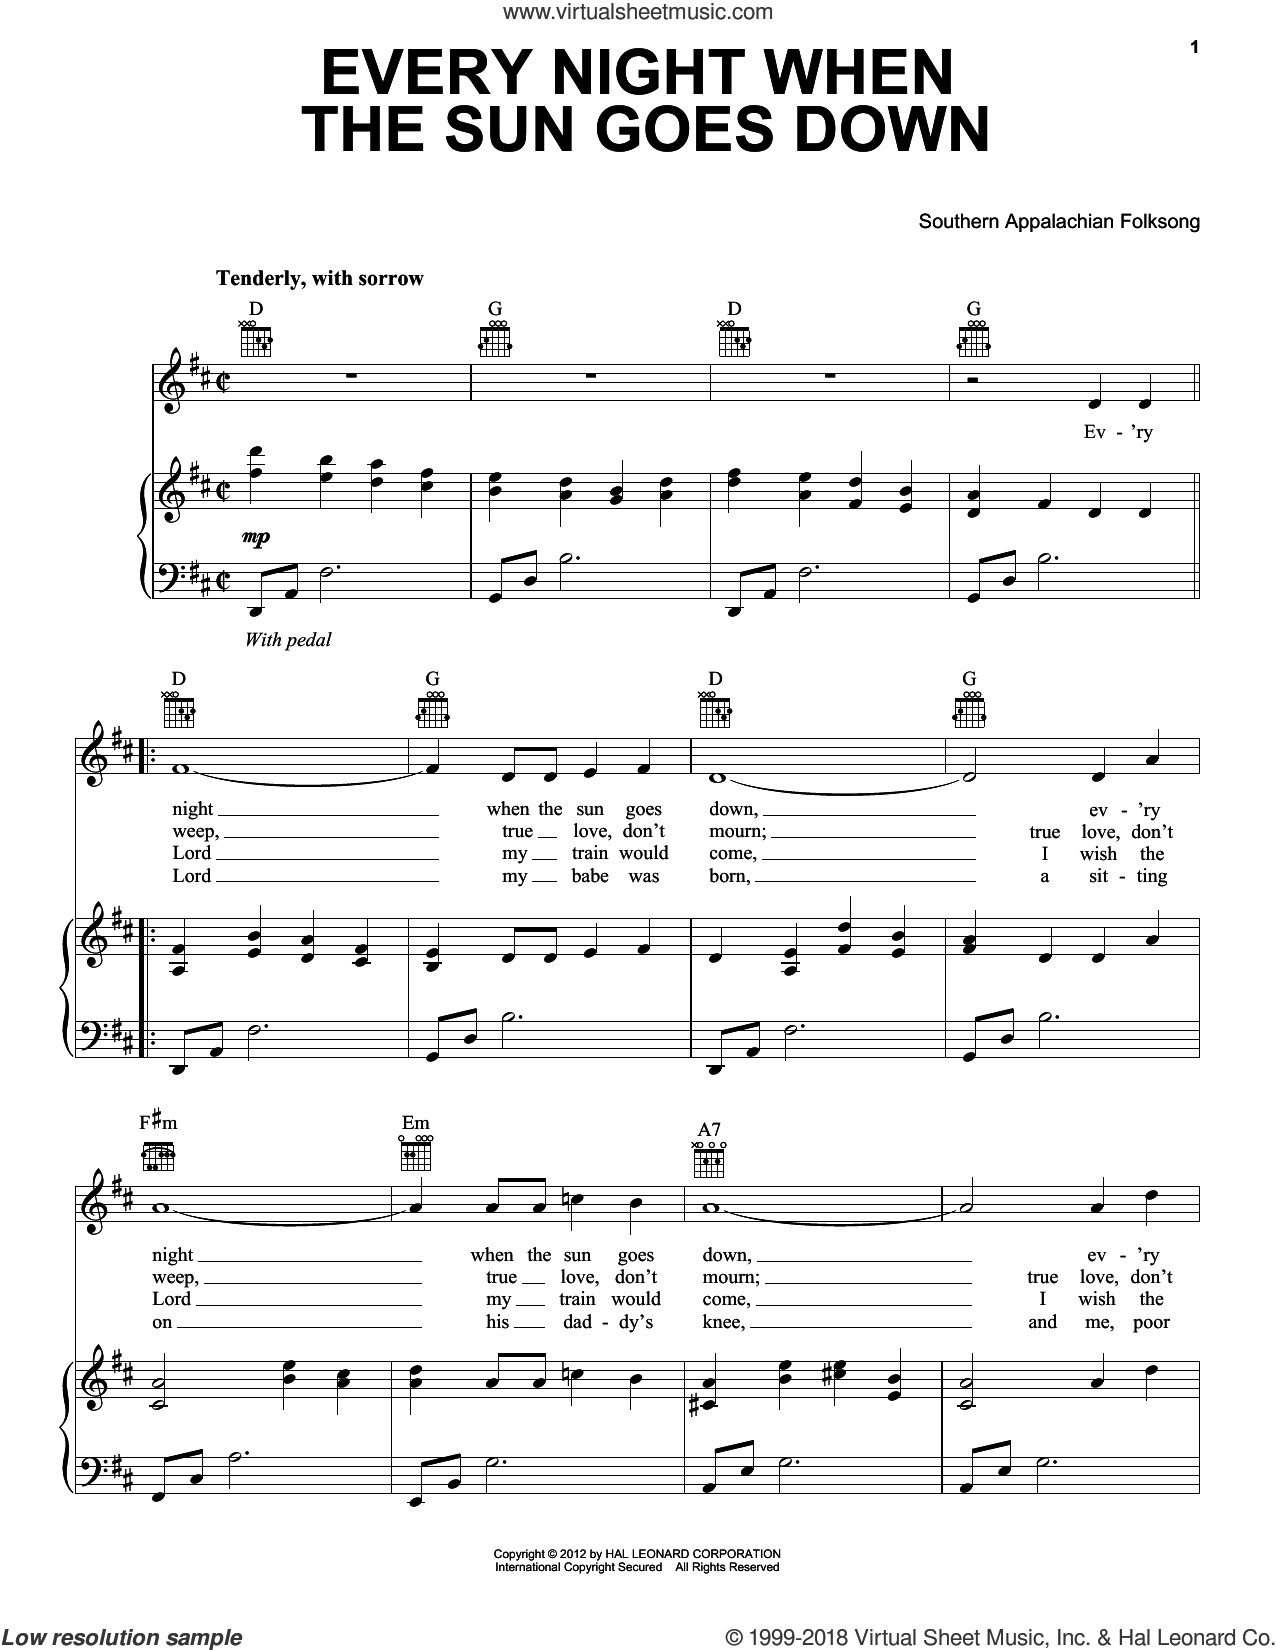 Every Night When Sun Goes Down sheet music for voice, piano or guitar, intermediate. Score Image Preview.